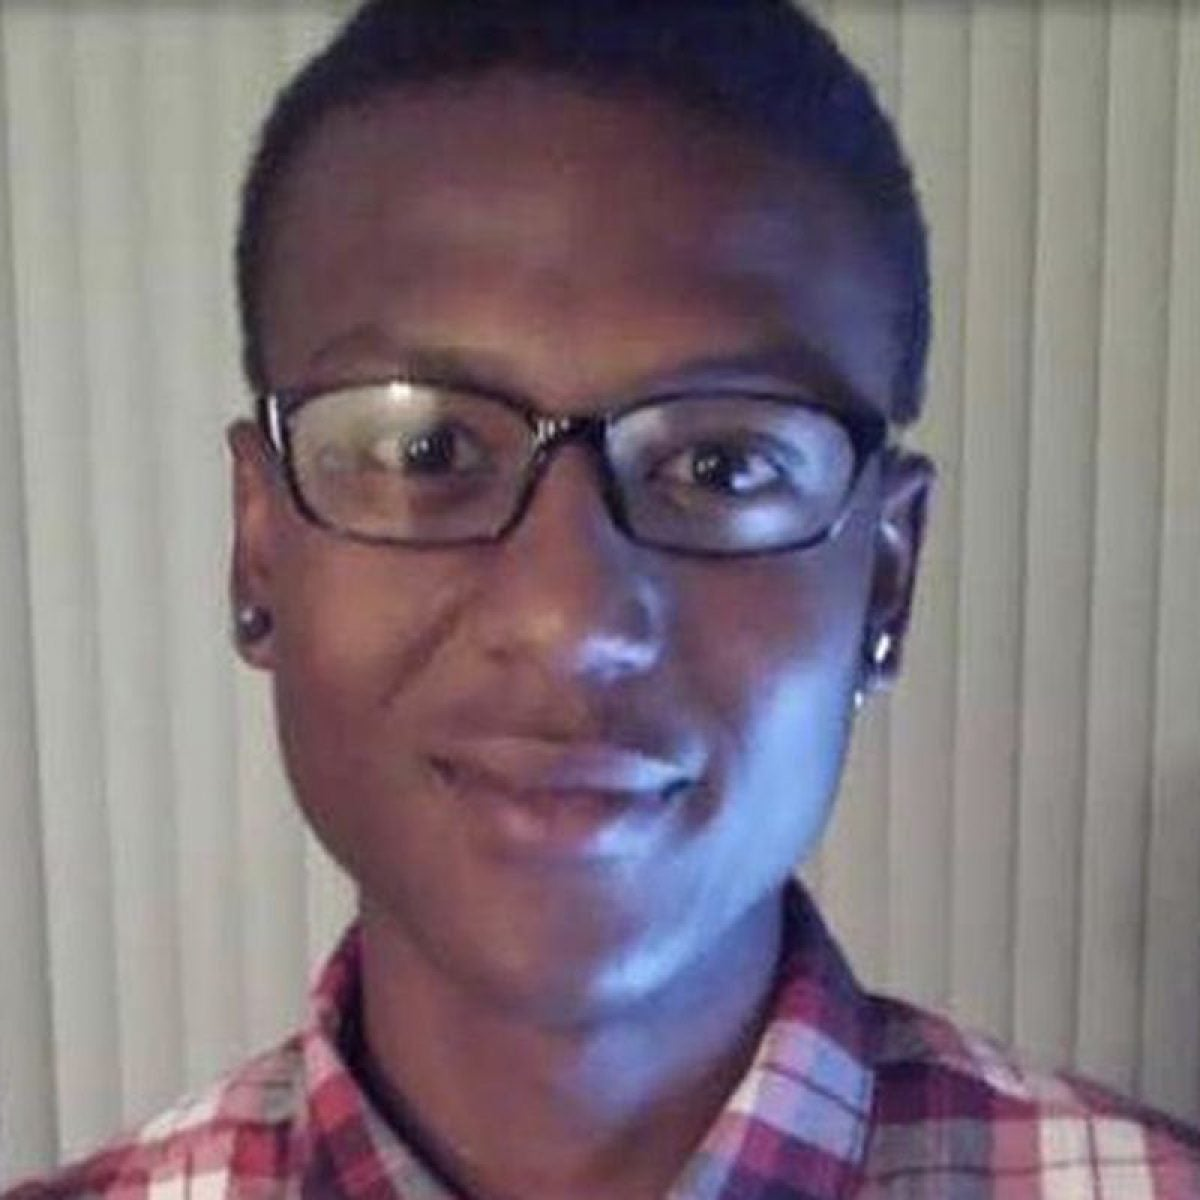 Renewed Interest In Police-Involved Death Of 23-Year-Old Elijah McClain